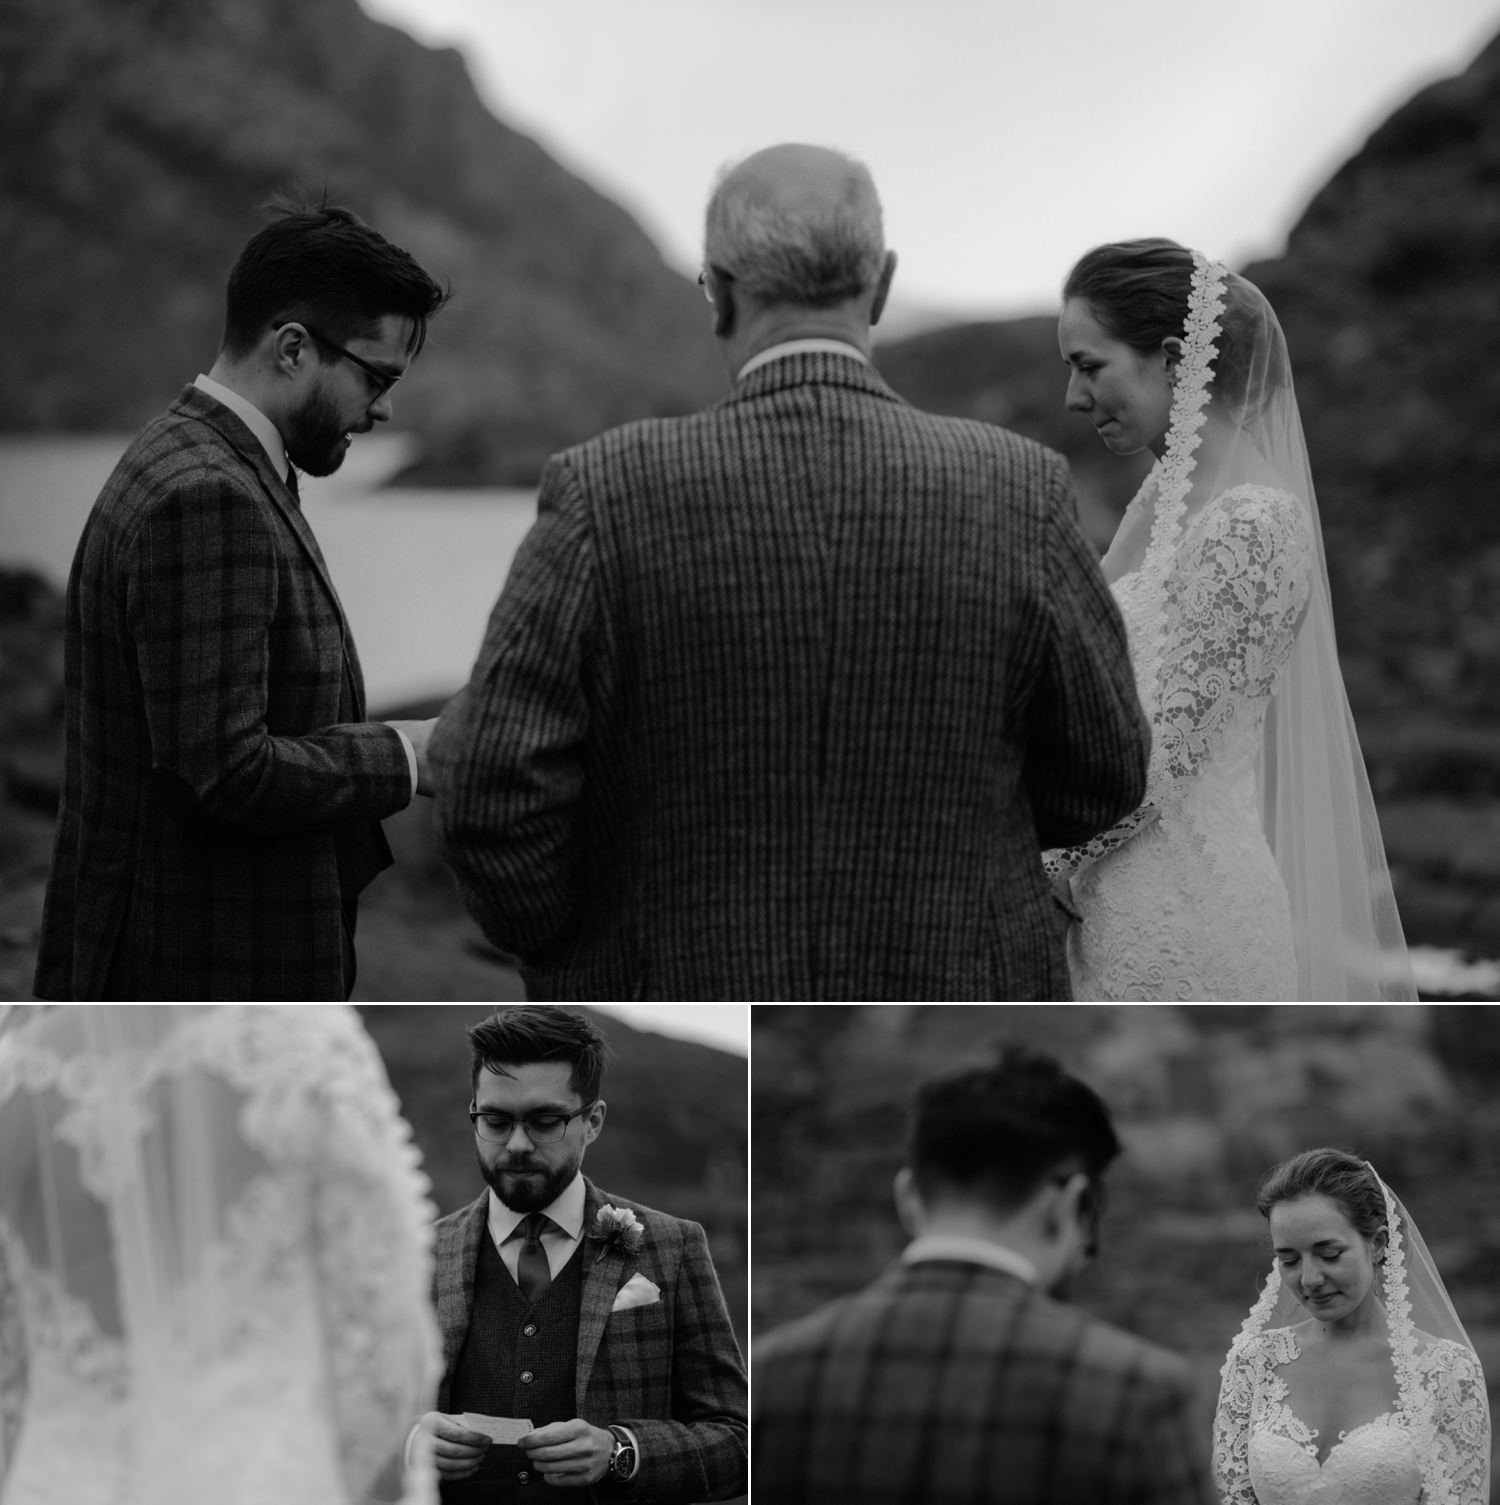 lsle of Skye elopement photographer_0432